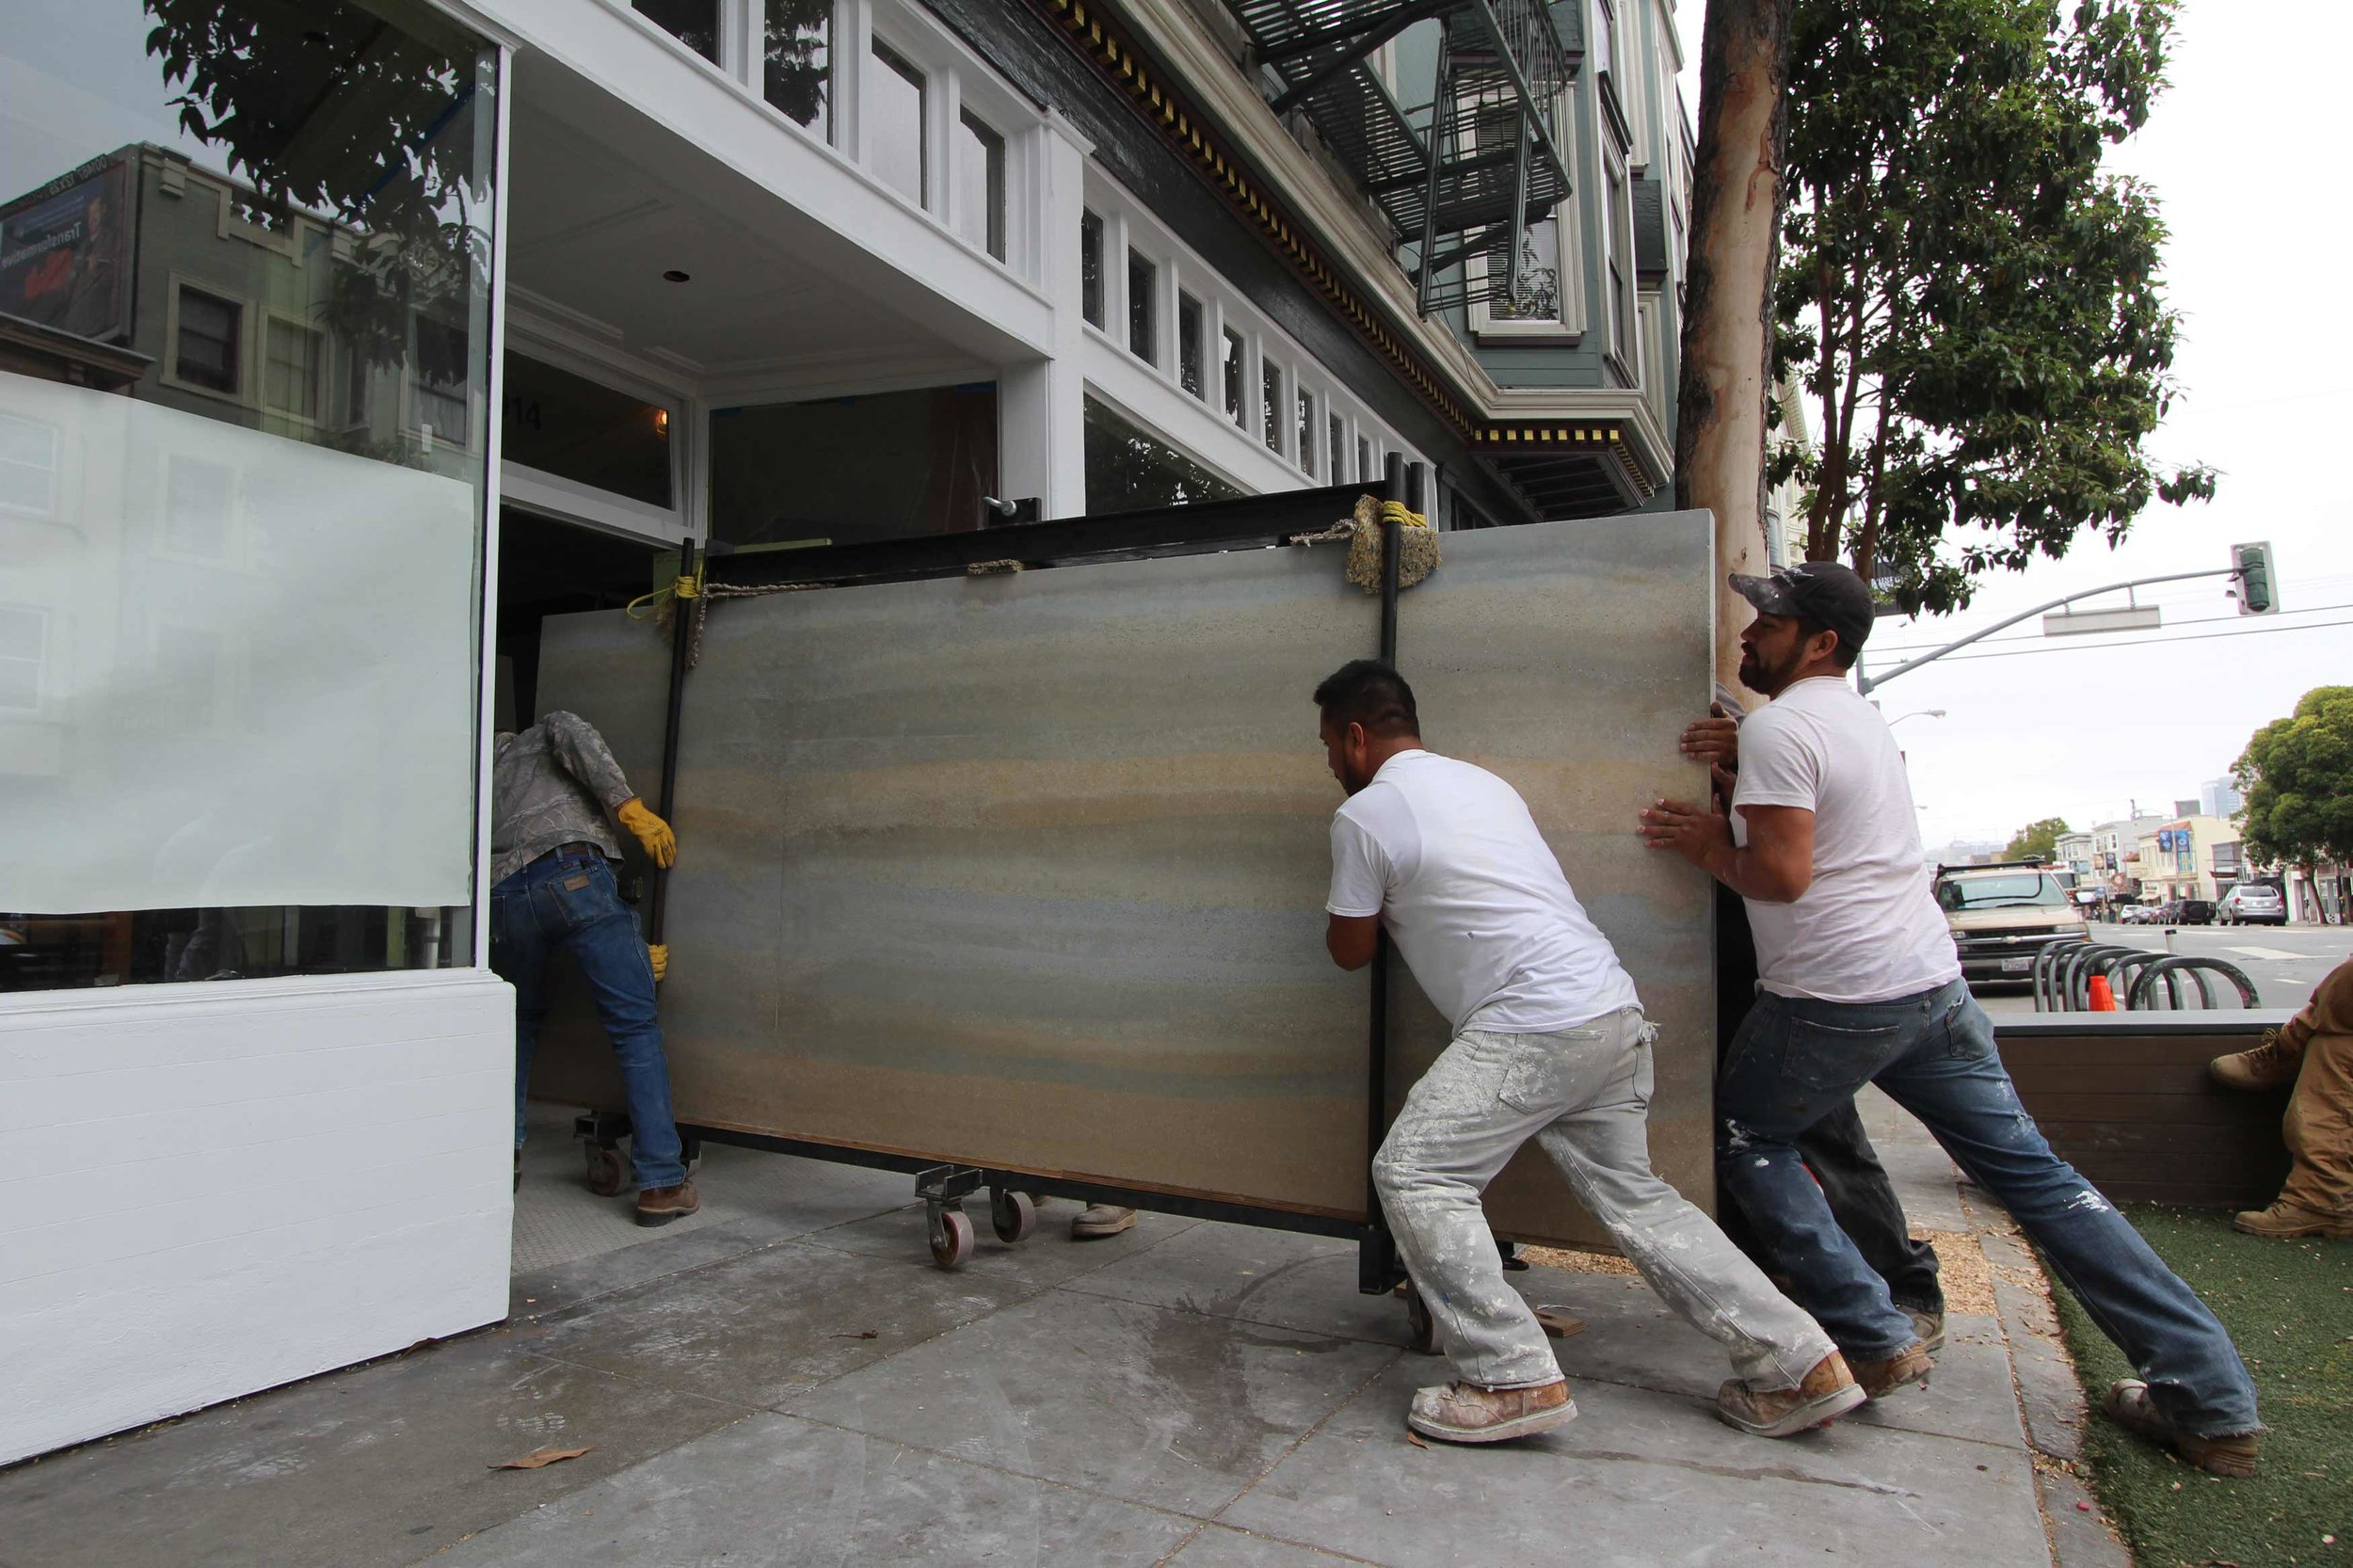 Pre-cast interior rammed earth panels being delivered to the new Reformation store in the Mission district of San Francisco. To accomplish the delivery - which had to be made through the storefront's narrow front door with no room for a forklift or crane - we built a portable jib to transfer each 2,000 pound panel from the trailer to the sidewalk and we built a six-wheeled trolley to roll the panels into the store. As you can see, it took three people pushing and one pulling to get the panel up and over the door threshold. The rammed earth arrived safe and ready for installation in a retail store that could have never used the material with traditional on-site form setting methods.